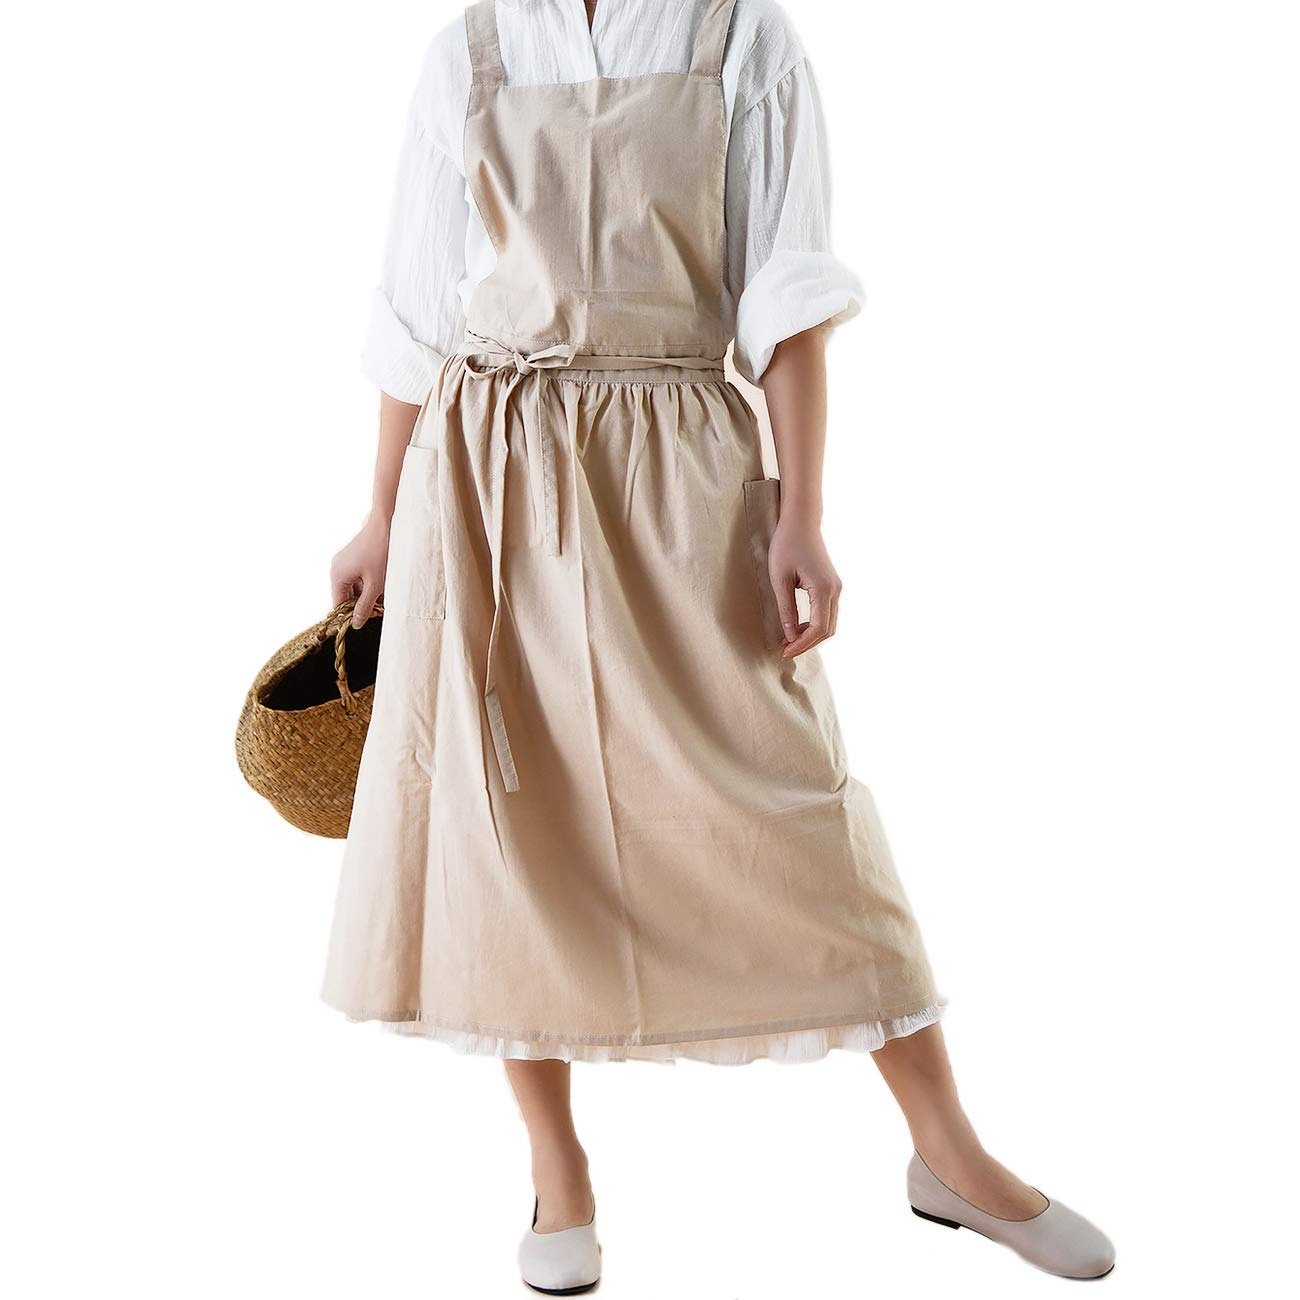 Waterproof Japanese Style Kitchen Cooking Apron Smock Pinafore Dress for Women with Pockets Light Beige